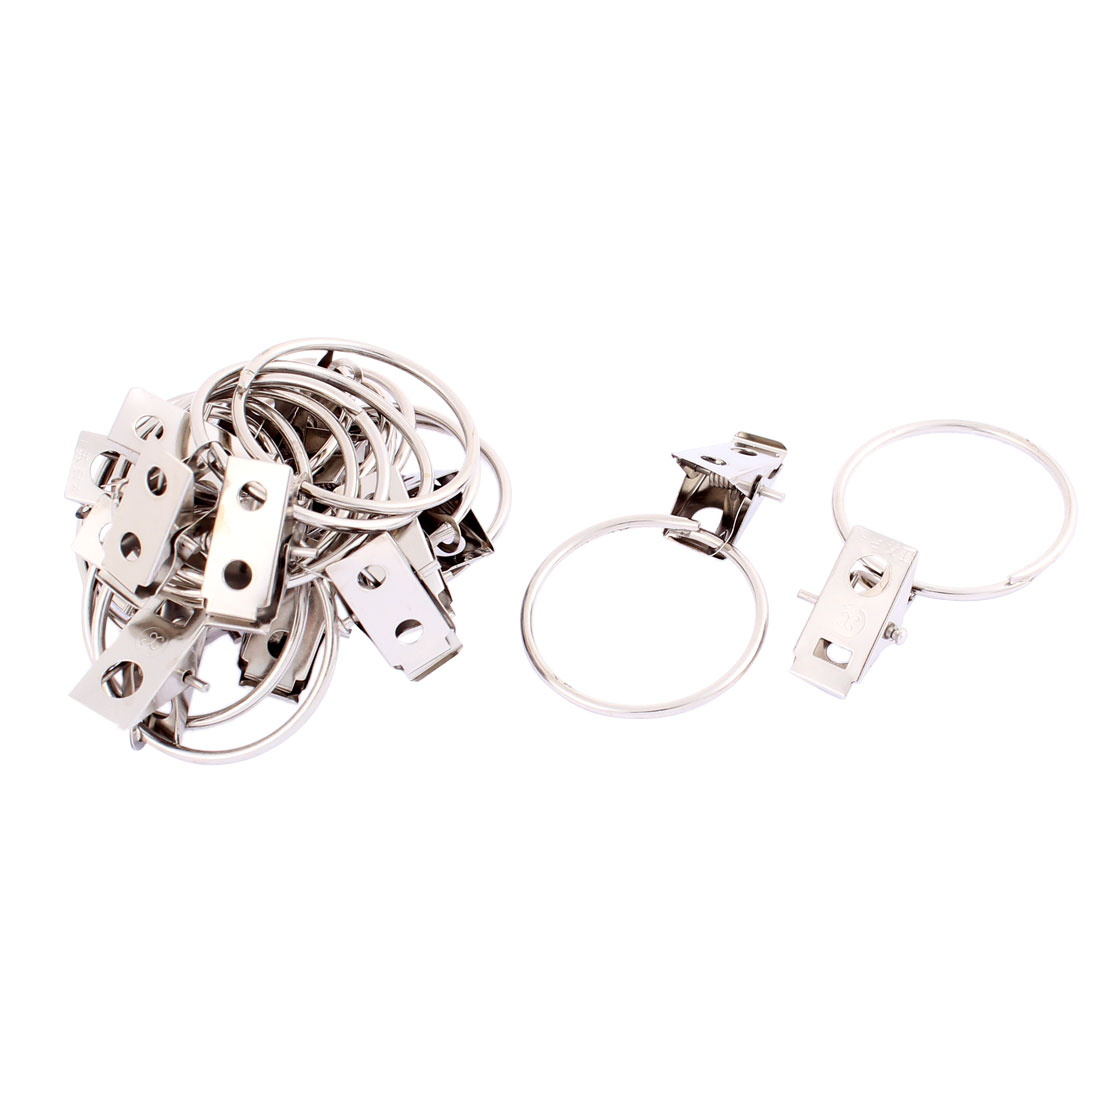 16 Pcs Stainless Steel Spring Loaded Sprung Curtain Clips 36mm Dia